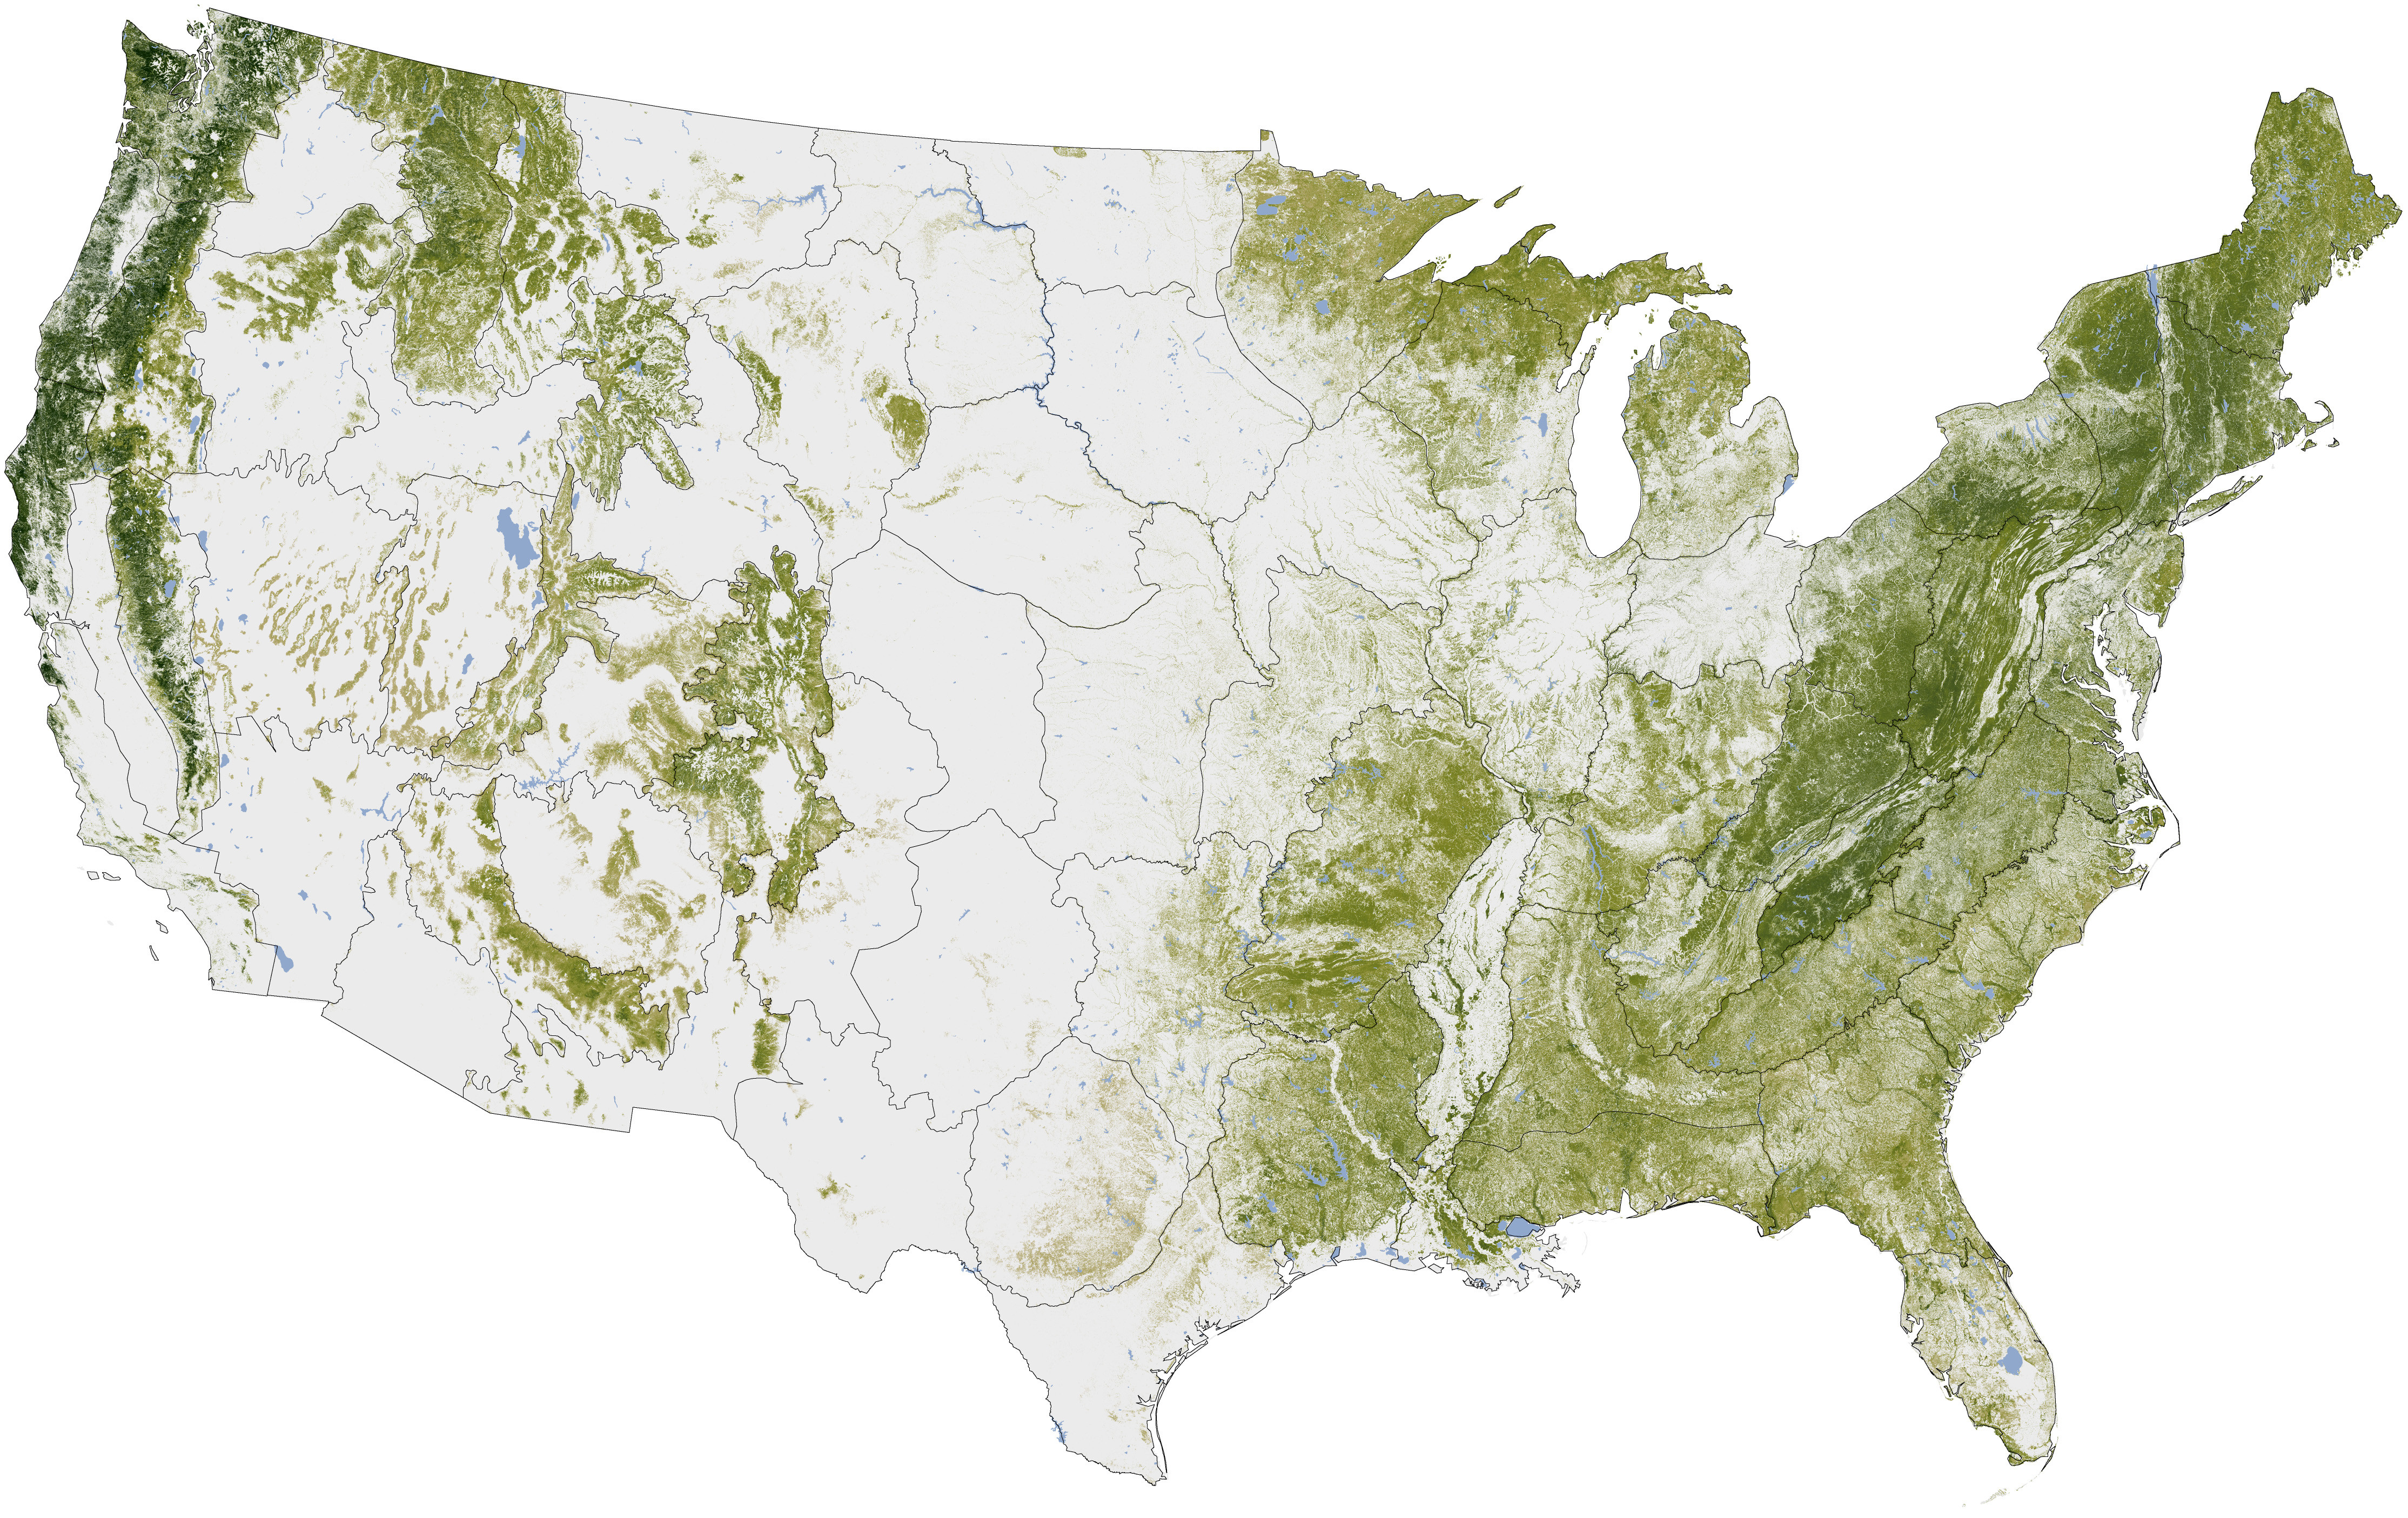 National Biomass And Carbon Dataset Map Depicts US Tree Density - Us density map